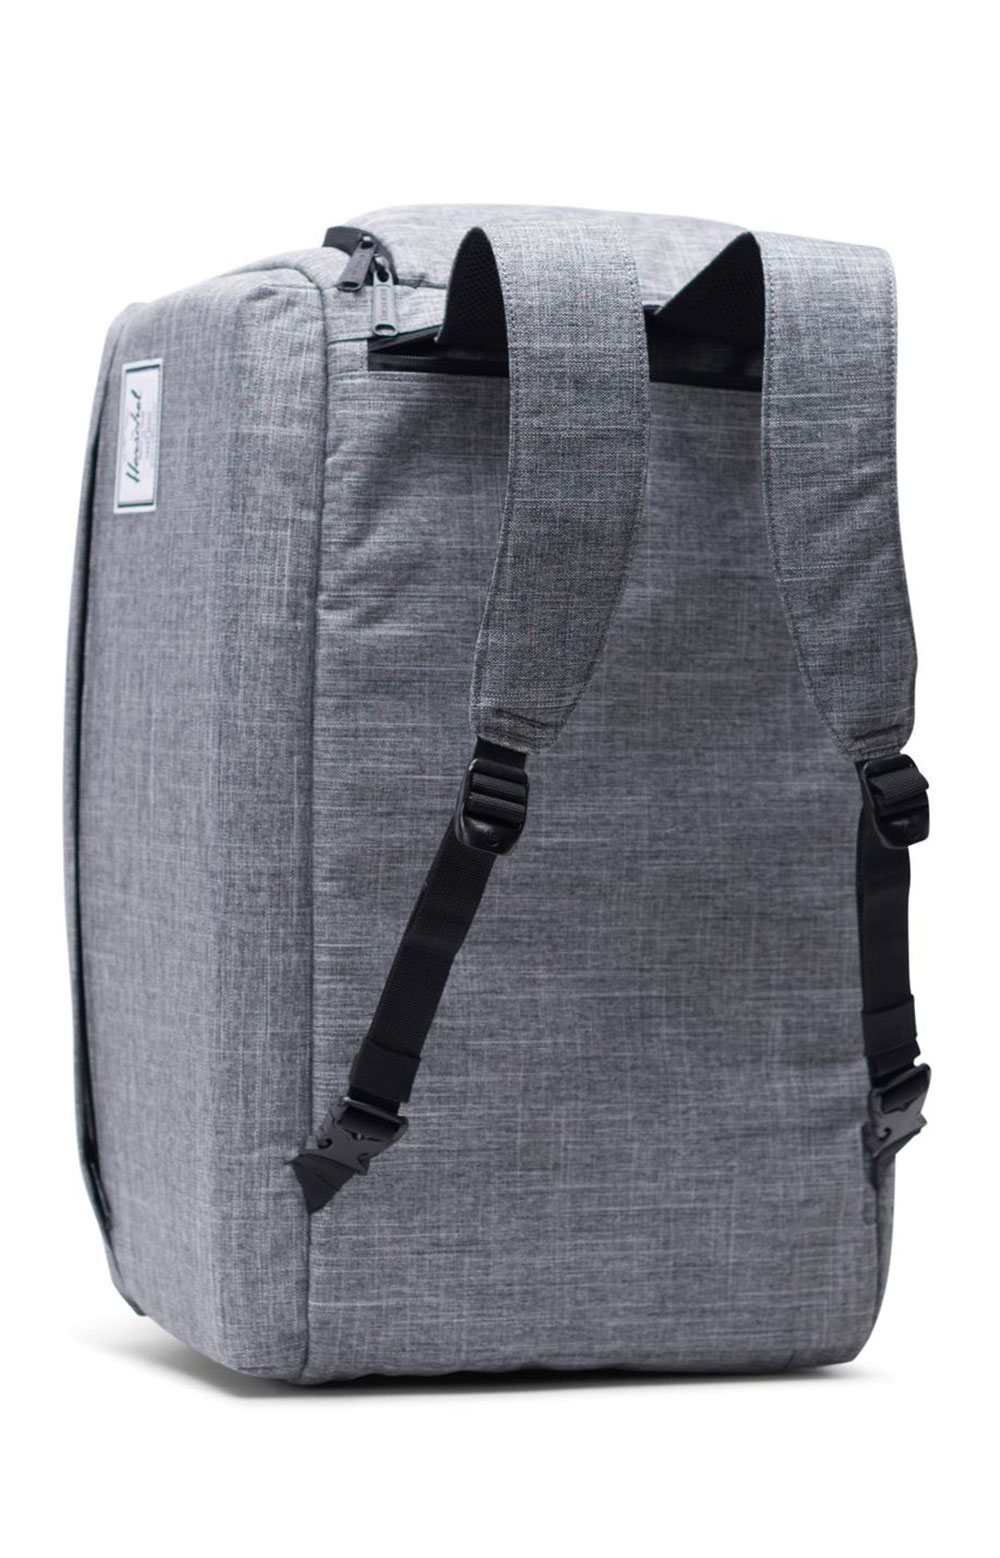 Outfitter Luggage 50L - Raven X  5